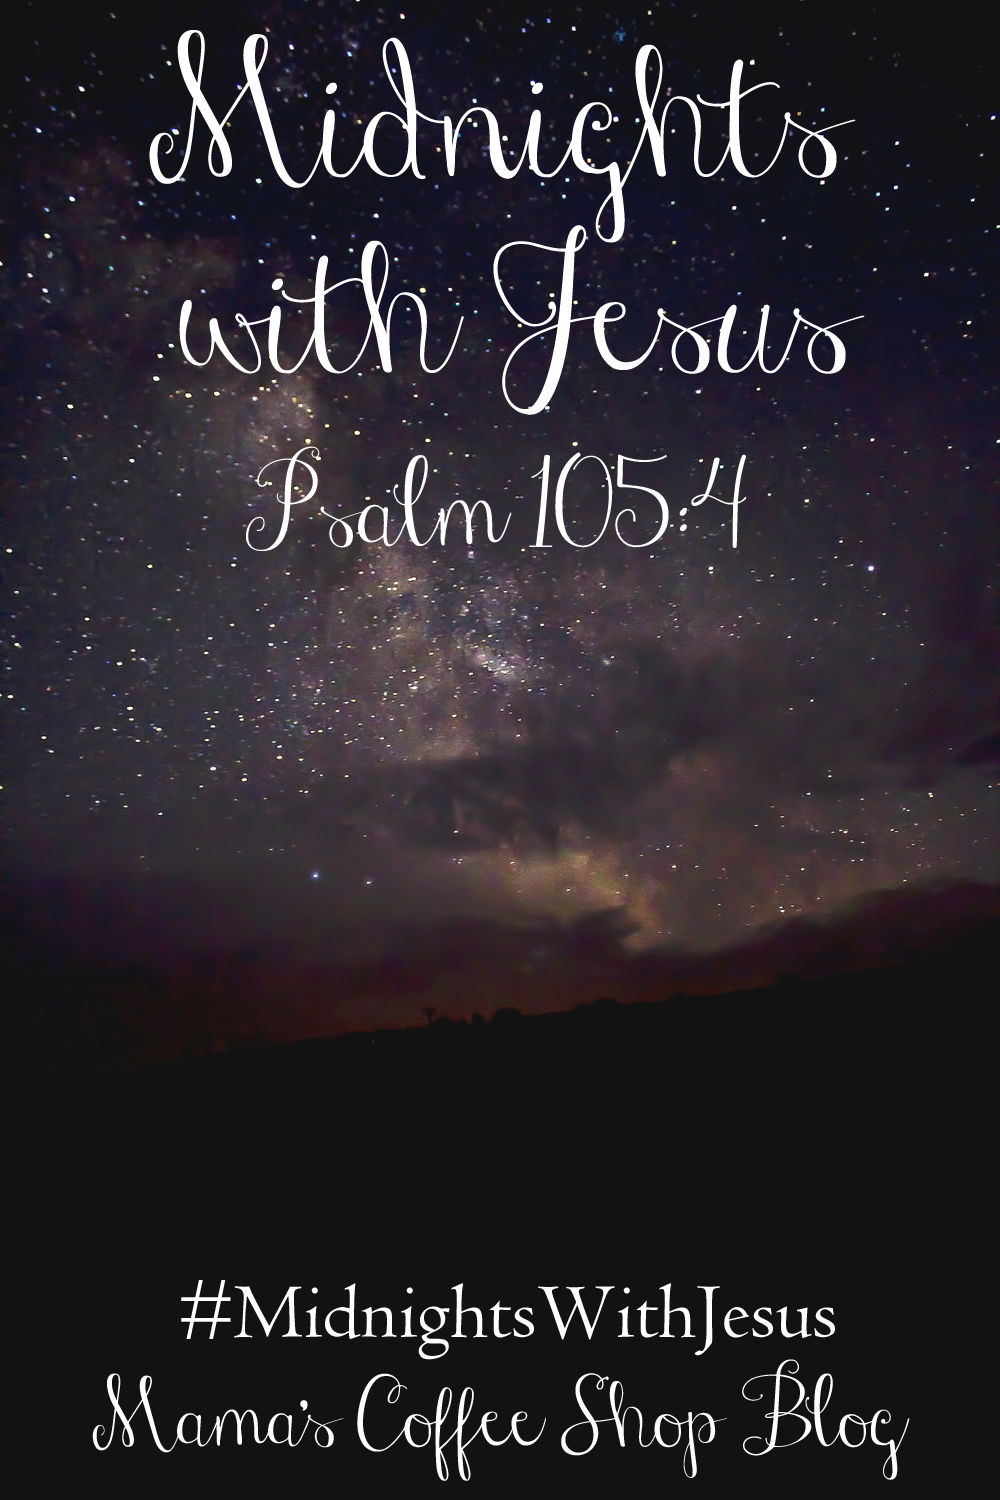 Midnights with Jesus - Psalm 105:4 - Mama's Coffee Shop Blog